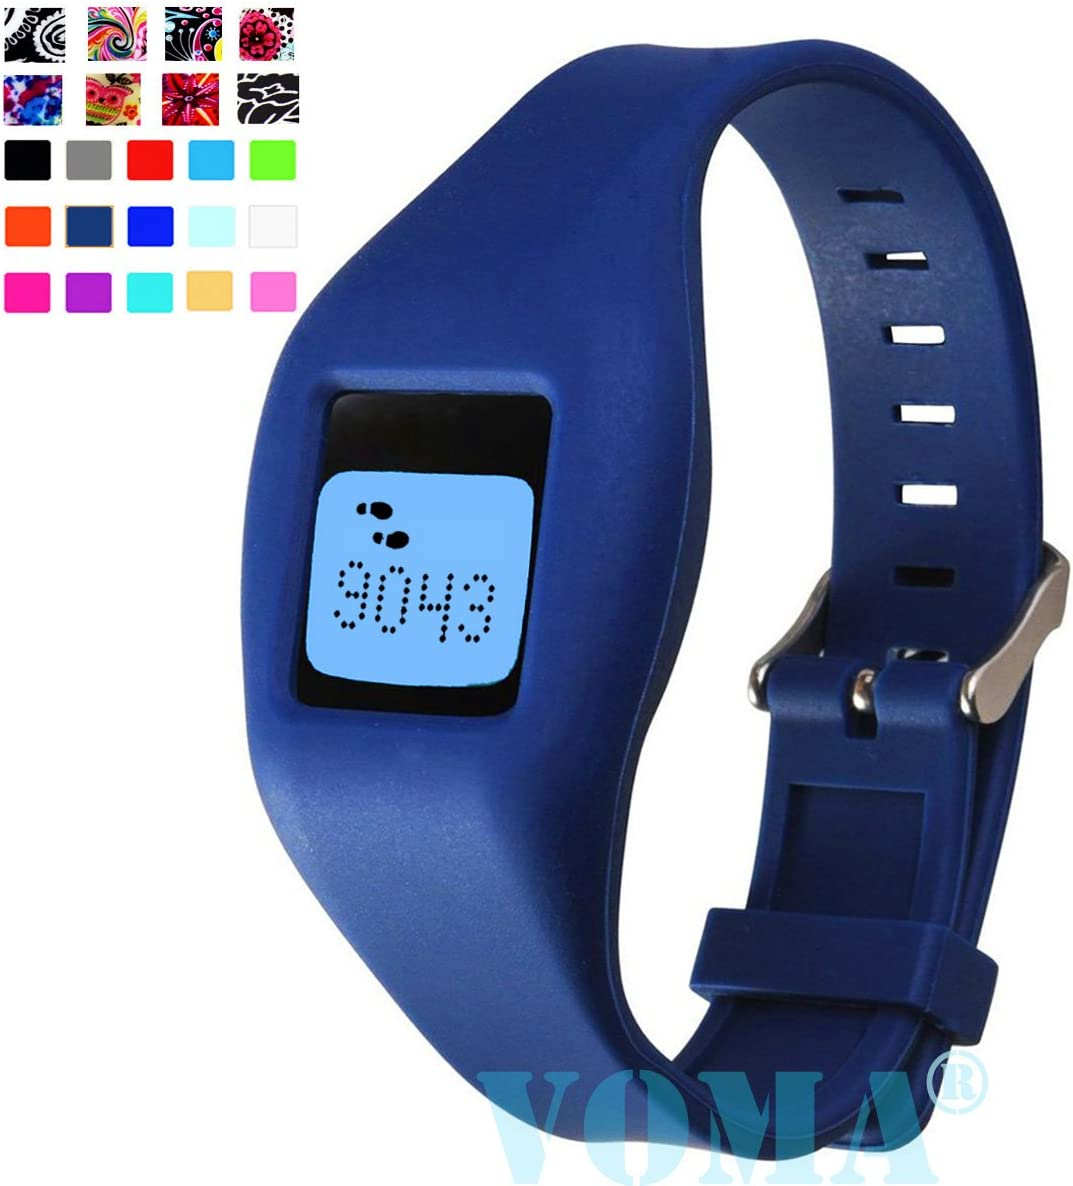 for USA Fitbit Zip Wristband Fitbit Band Fitbit Zip Band Fitbit Wristband Fitbit Bracelet Fitbit Zip Replacement Band Nvblu